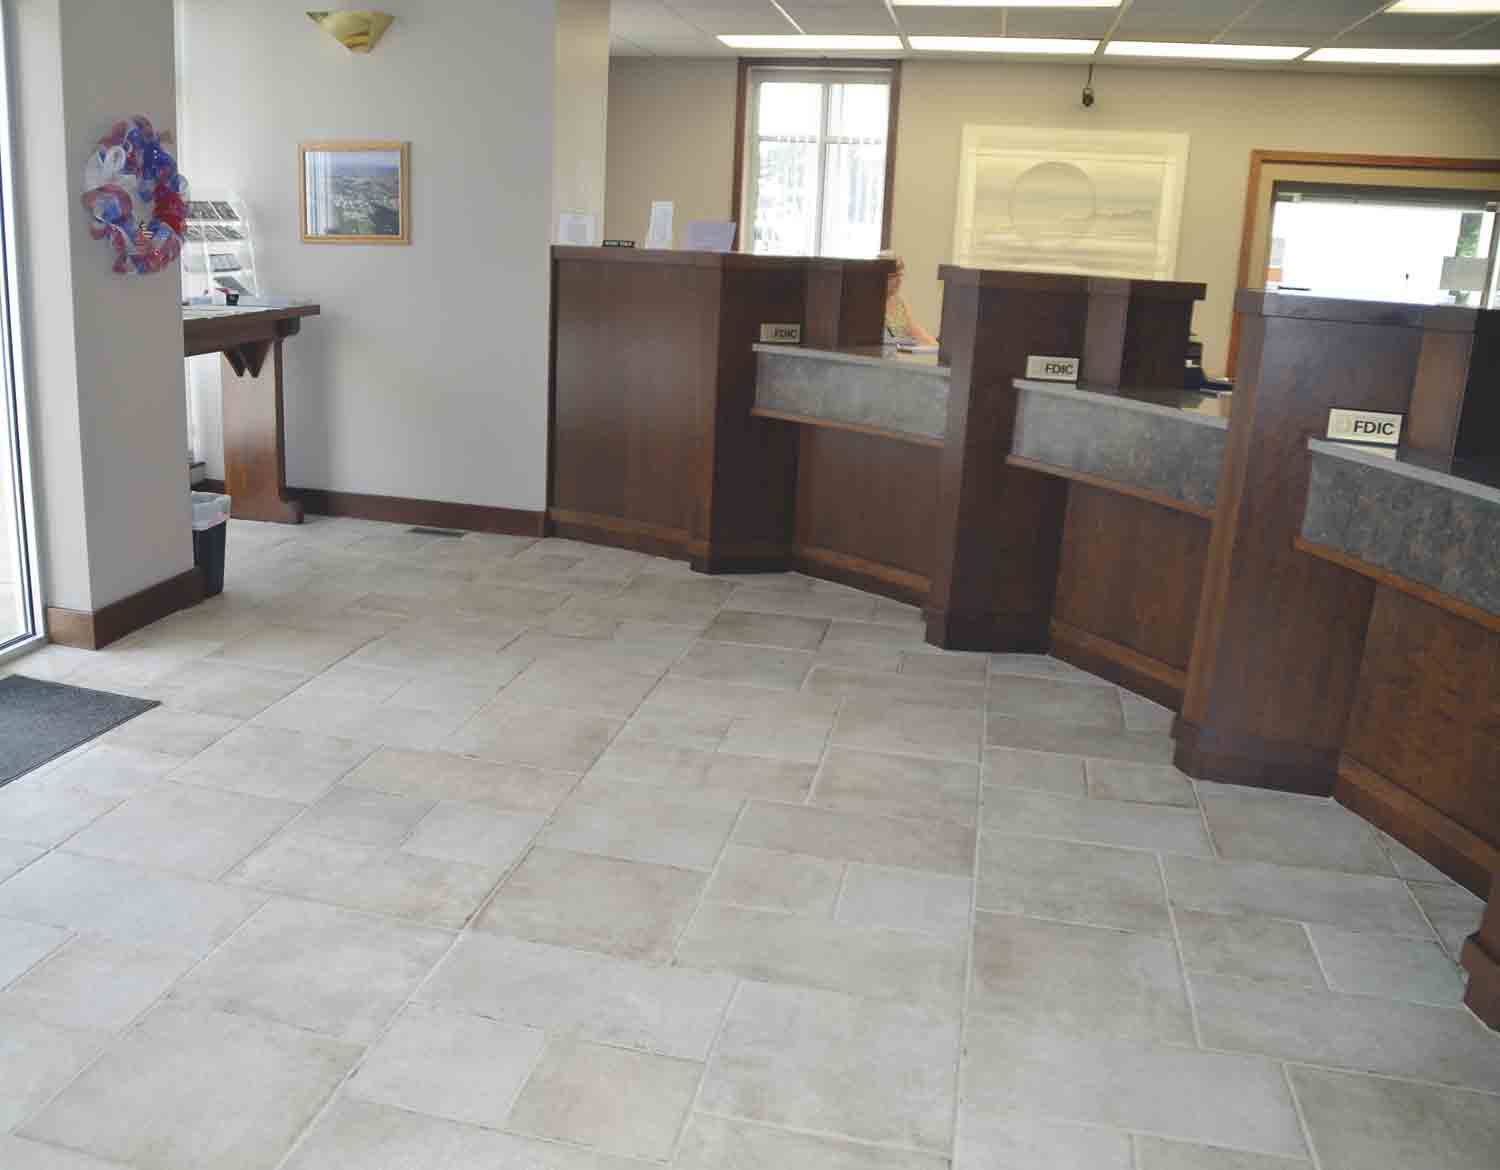 Other lobby renovations include glazed-porcelain tile flooring where carpet used to be, plus a new color of paint called Utterly Beige on the walls.MSB remodel gives it a more contemporary lookBy Chris Debackcdeback@thefayettecountyunion.com...